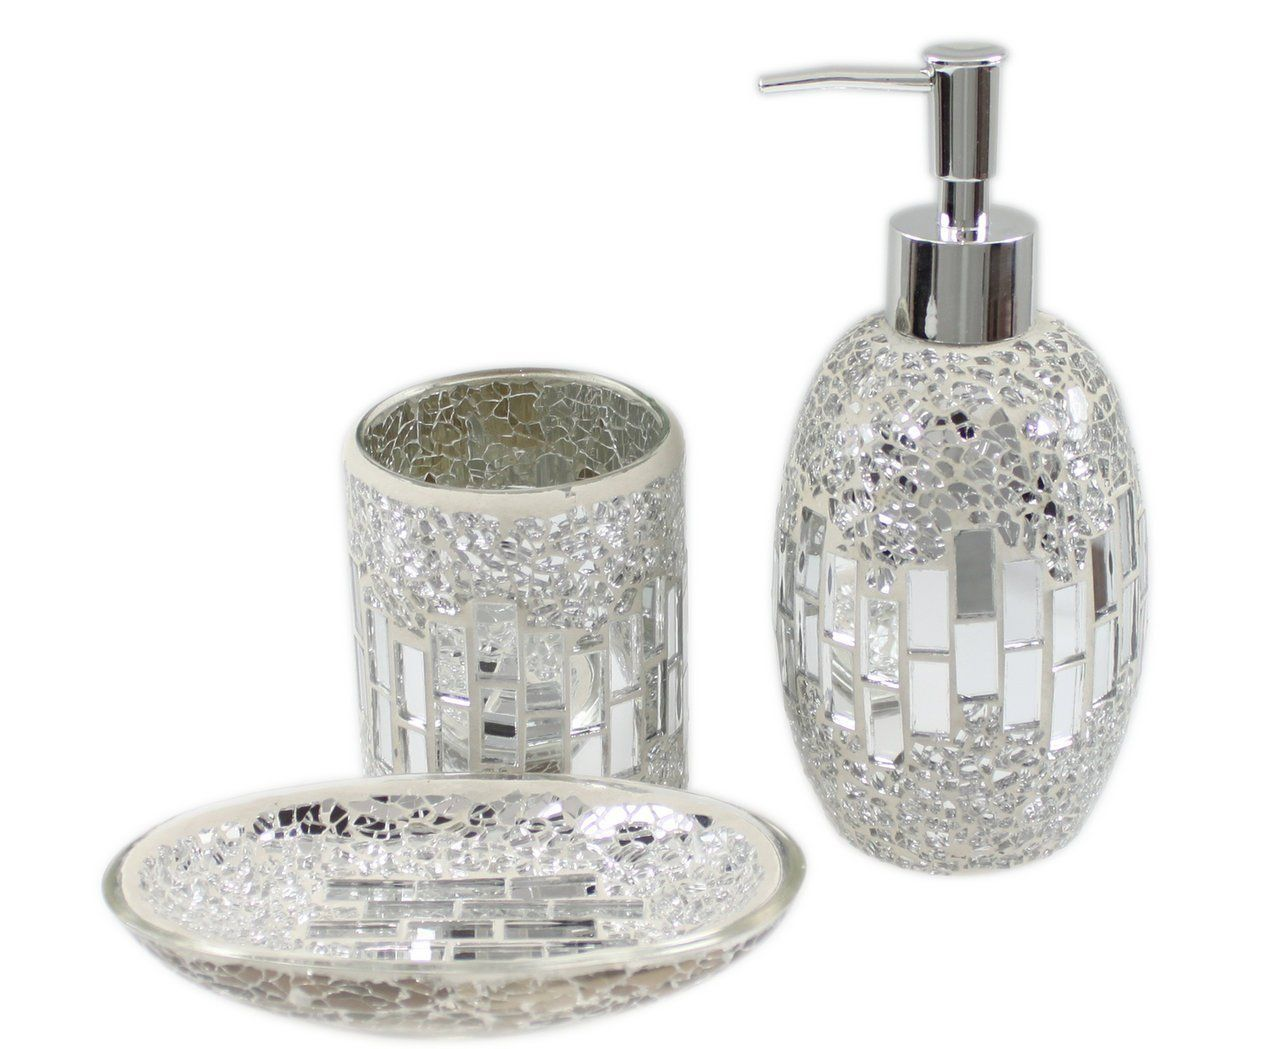 Sparkle Mosaic Bathroom Accessories